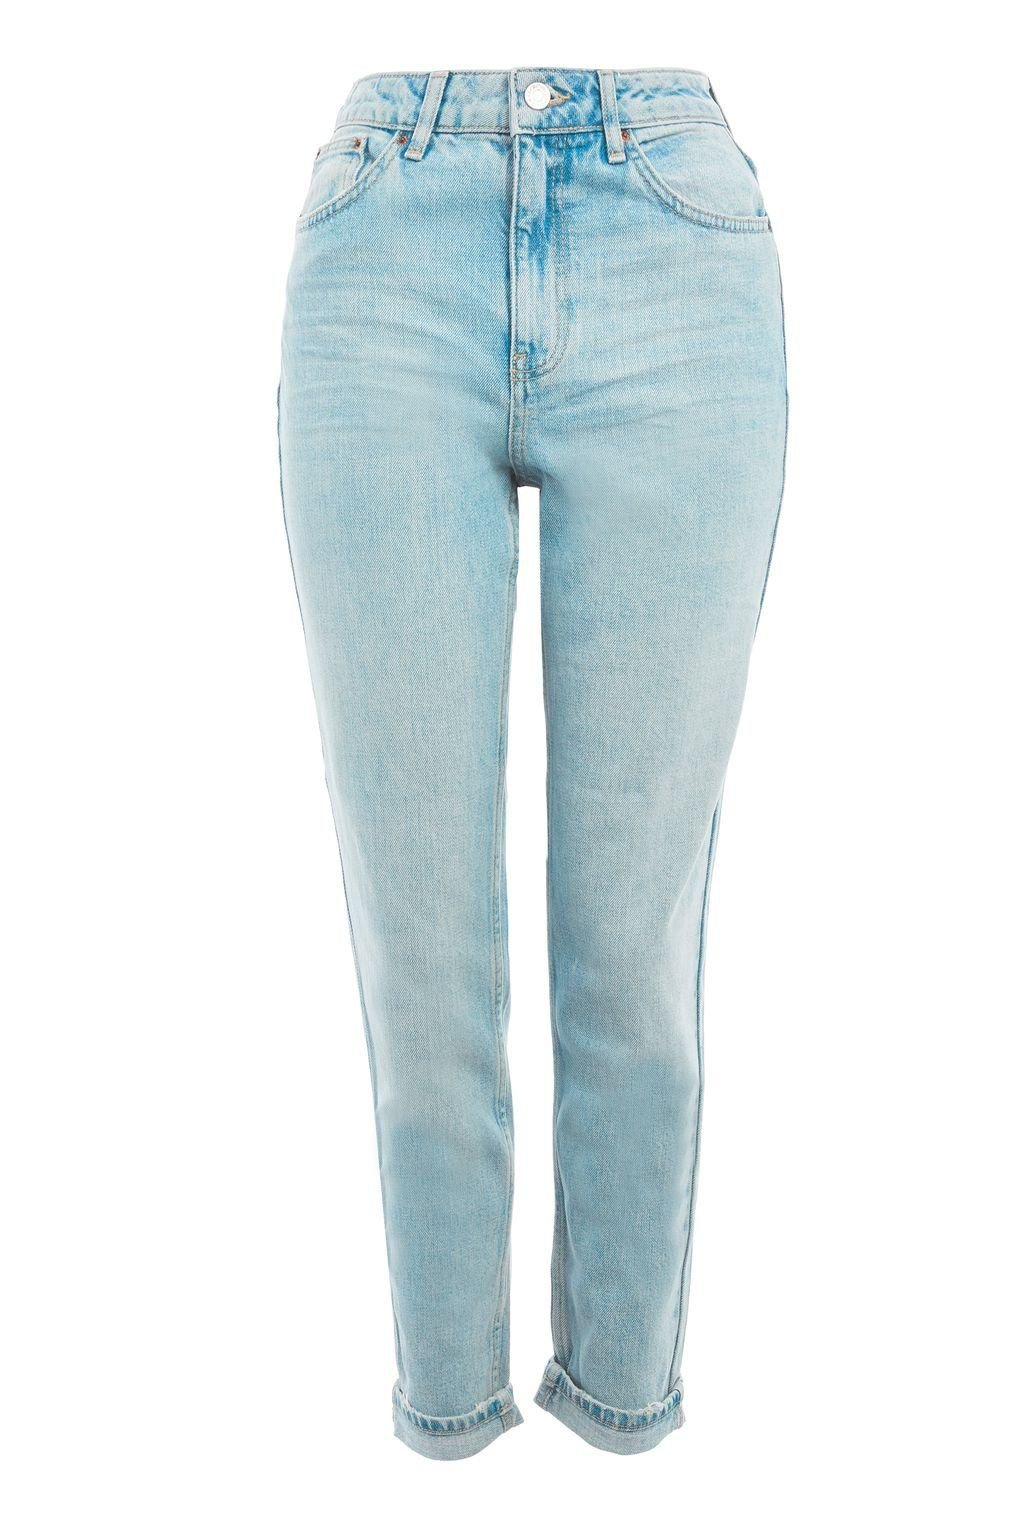 TALL Beach Mom Jeans - Jeans - Clothing - Topshop